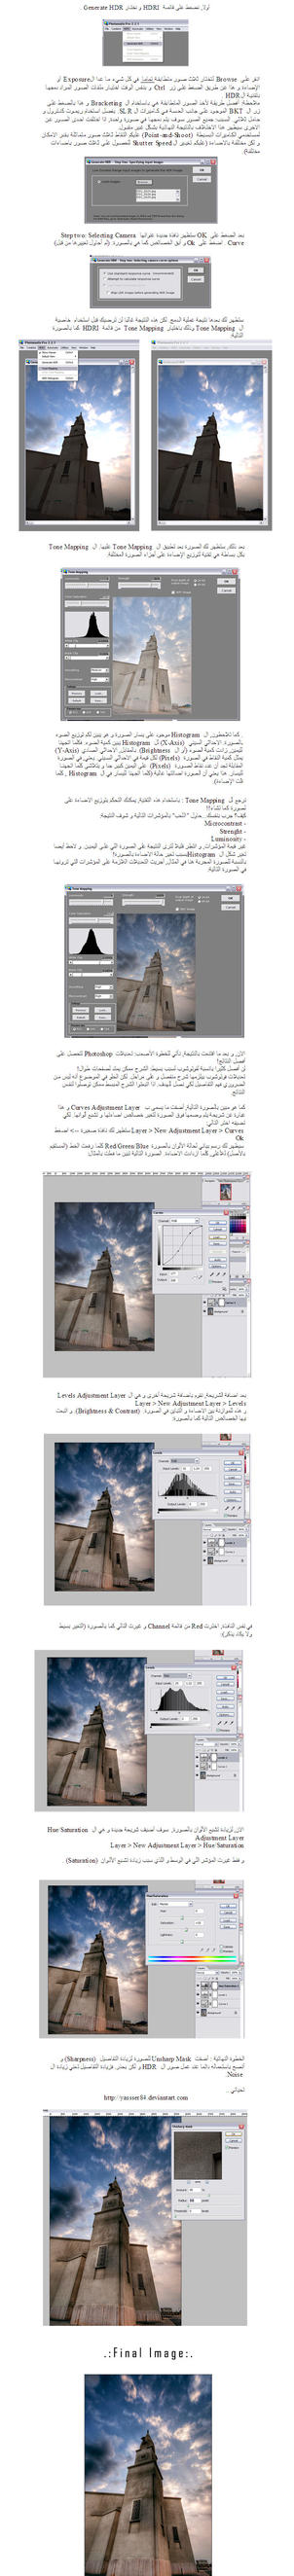 HDR Toturial -Arabic Version- by Yassser84